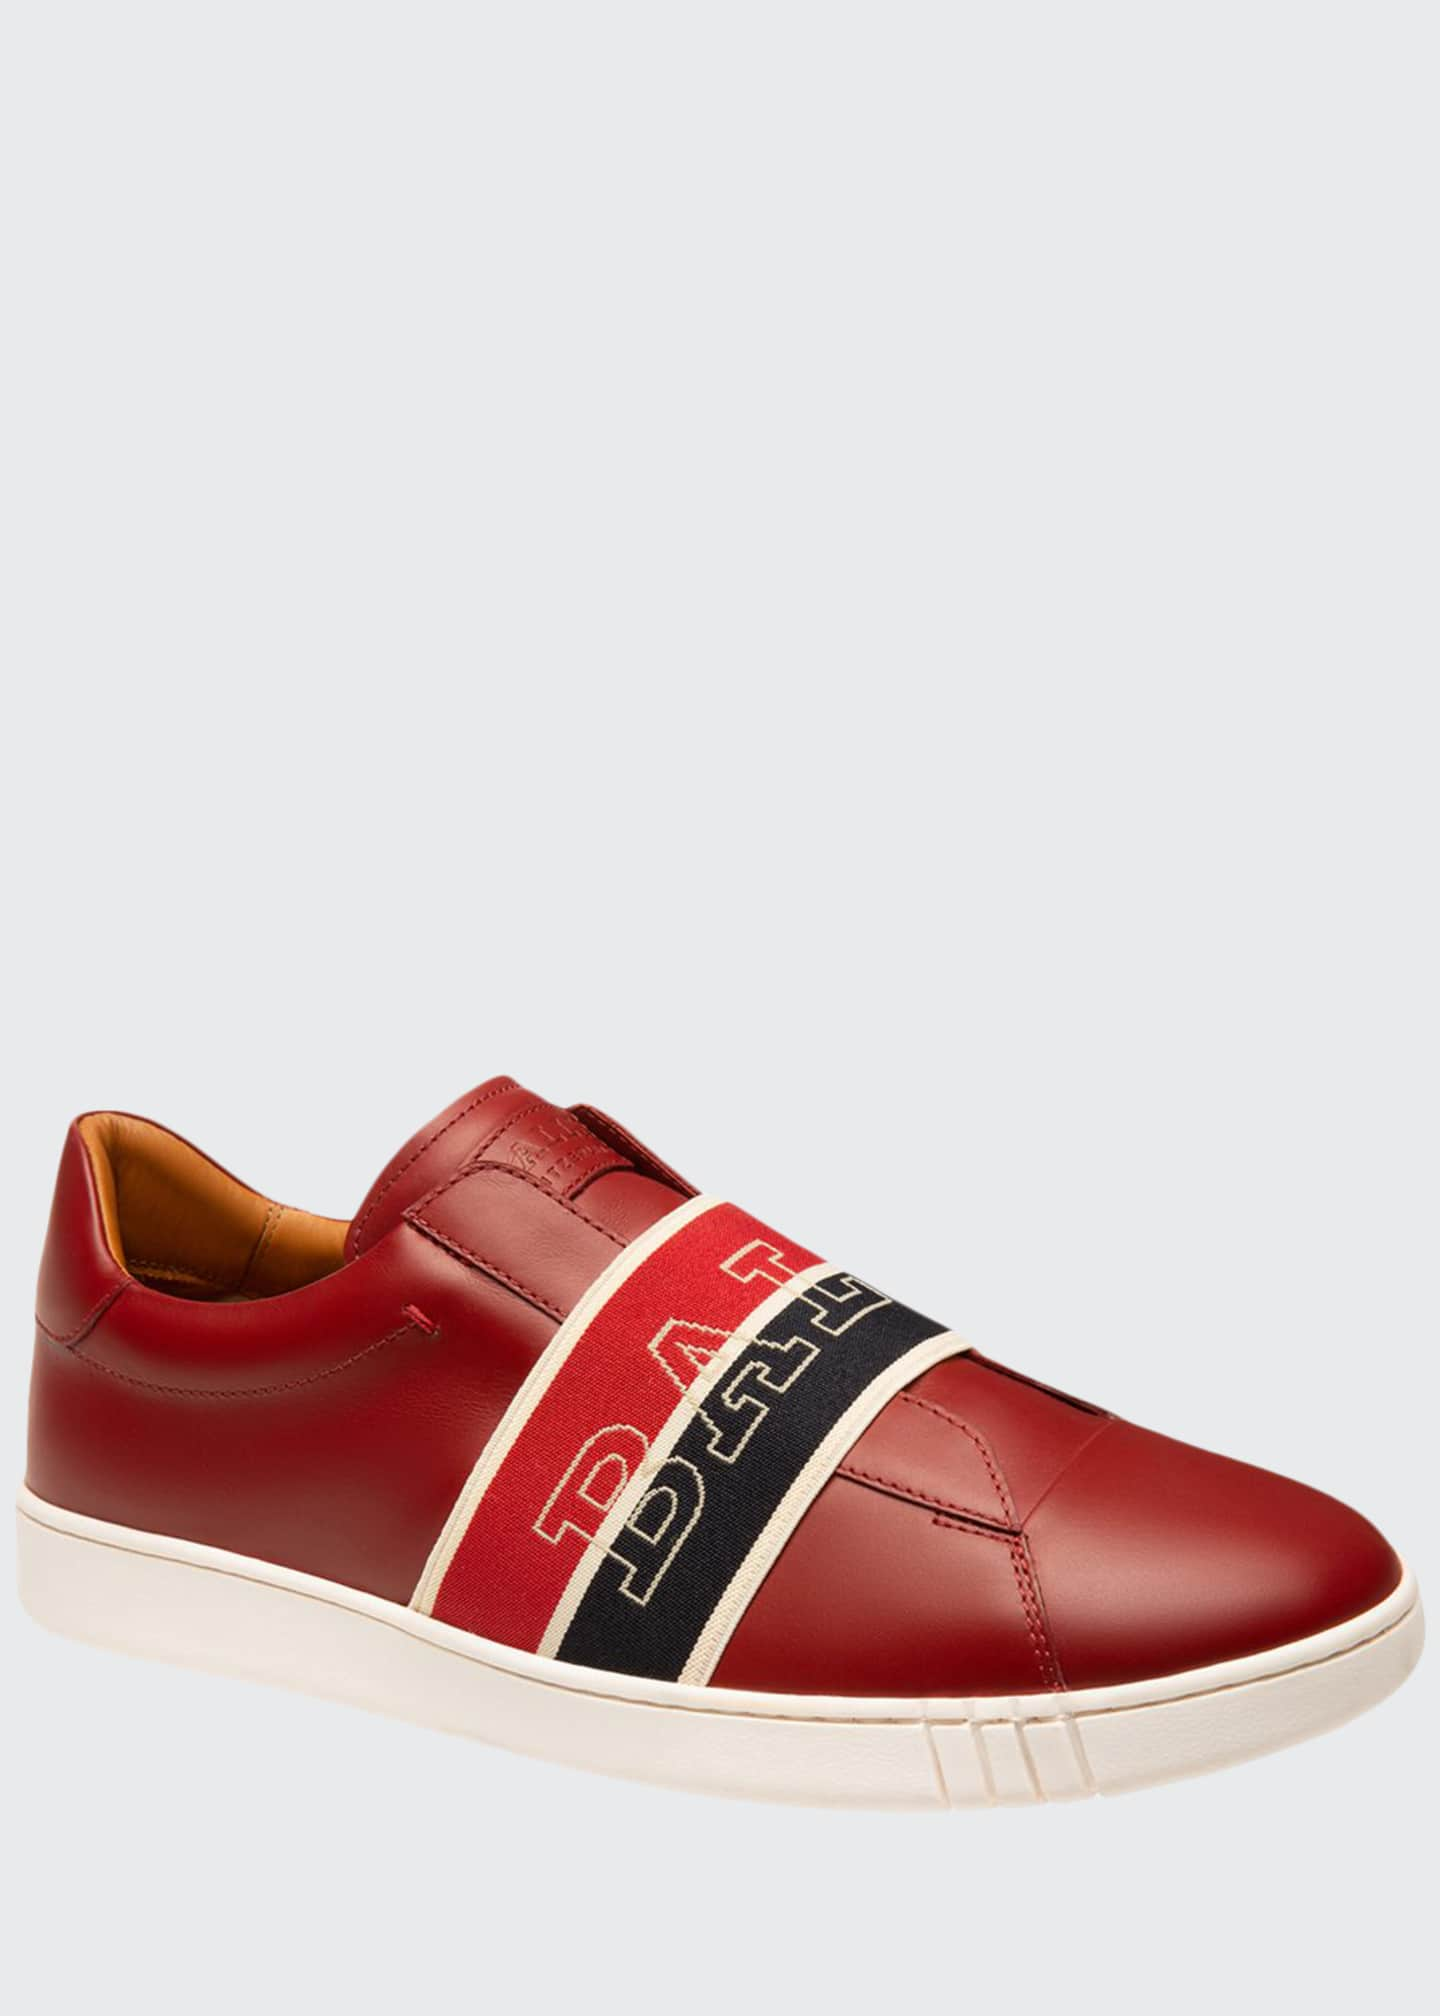 Bally Men's Wictor Trainspotting Leather Sneakers